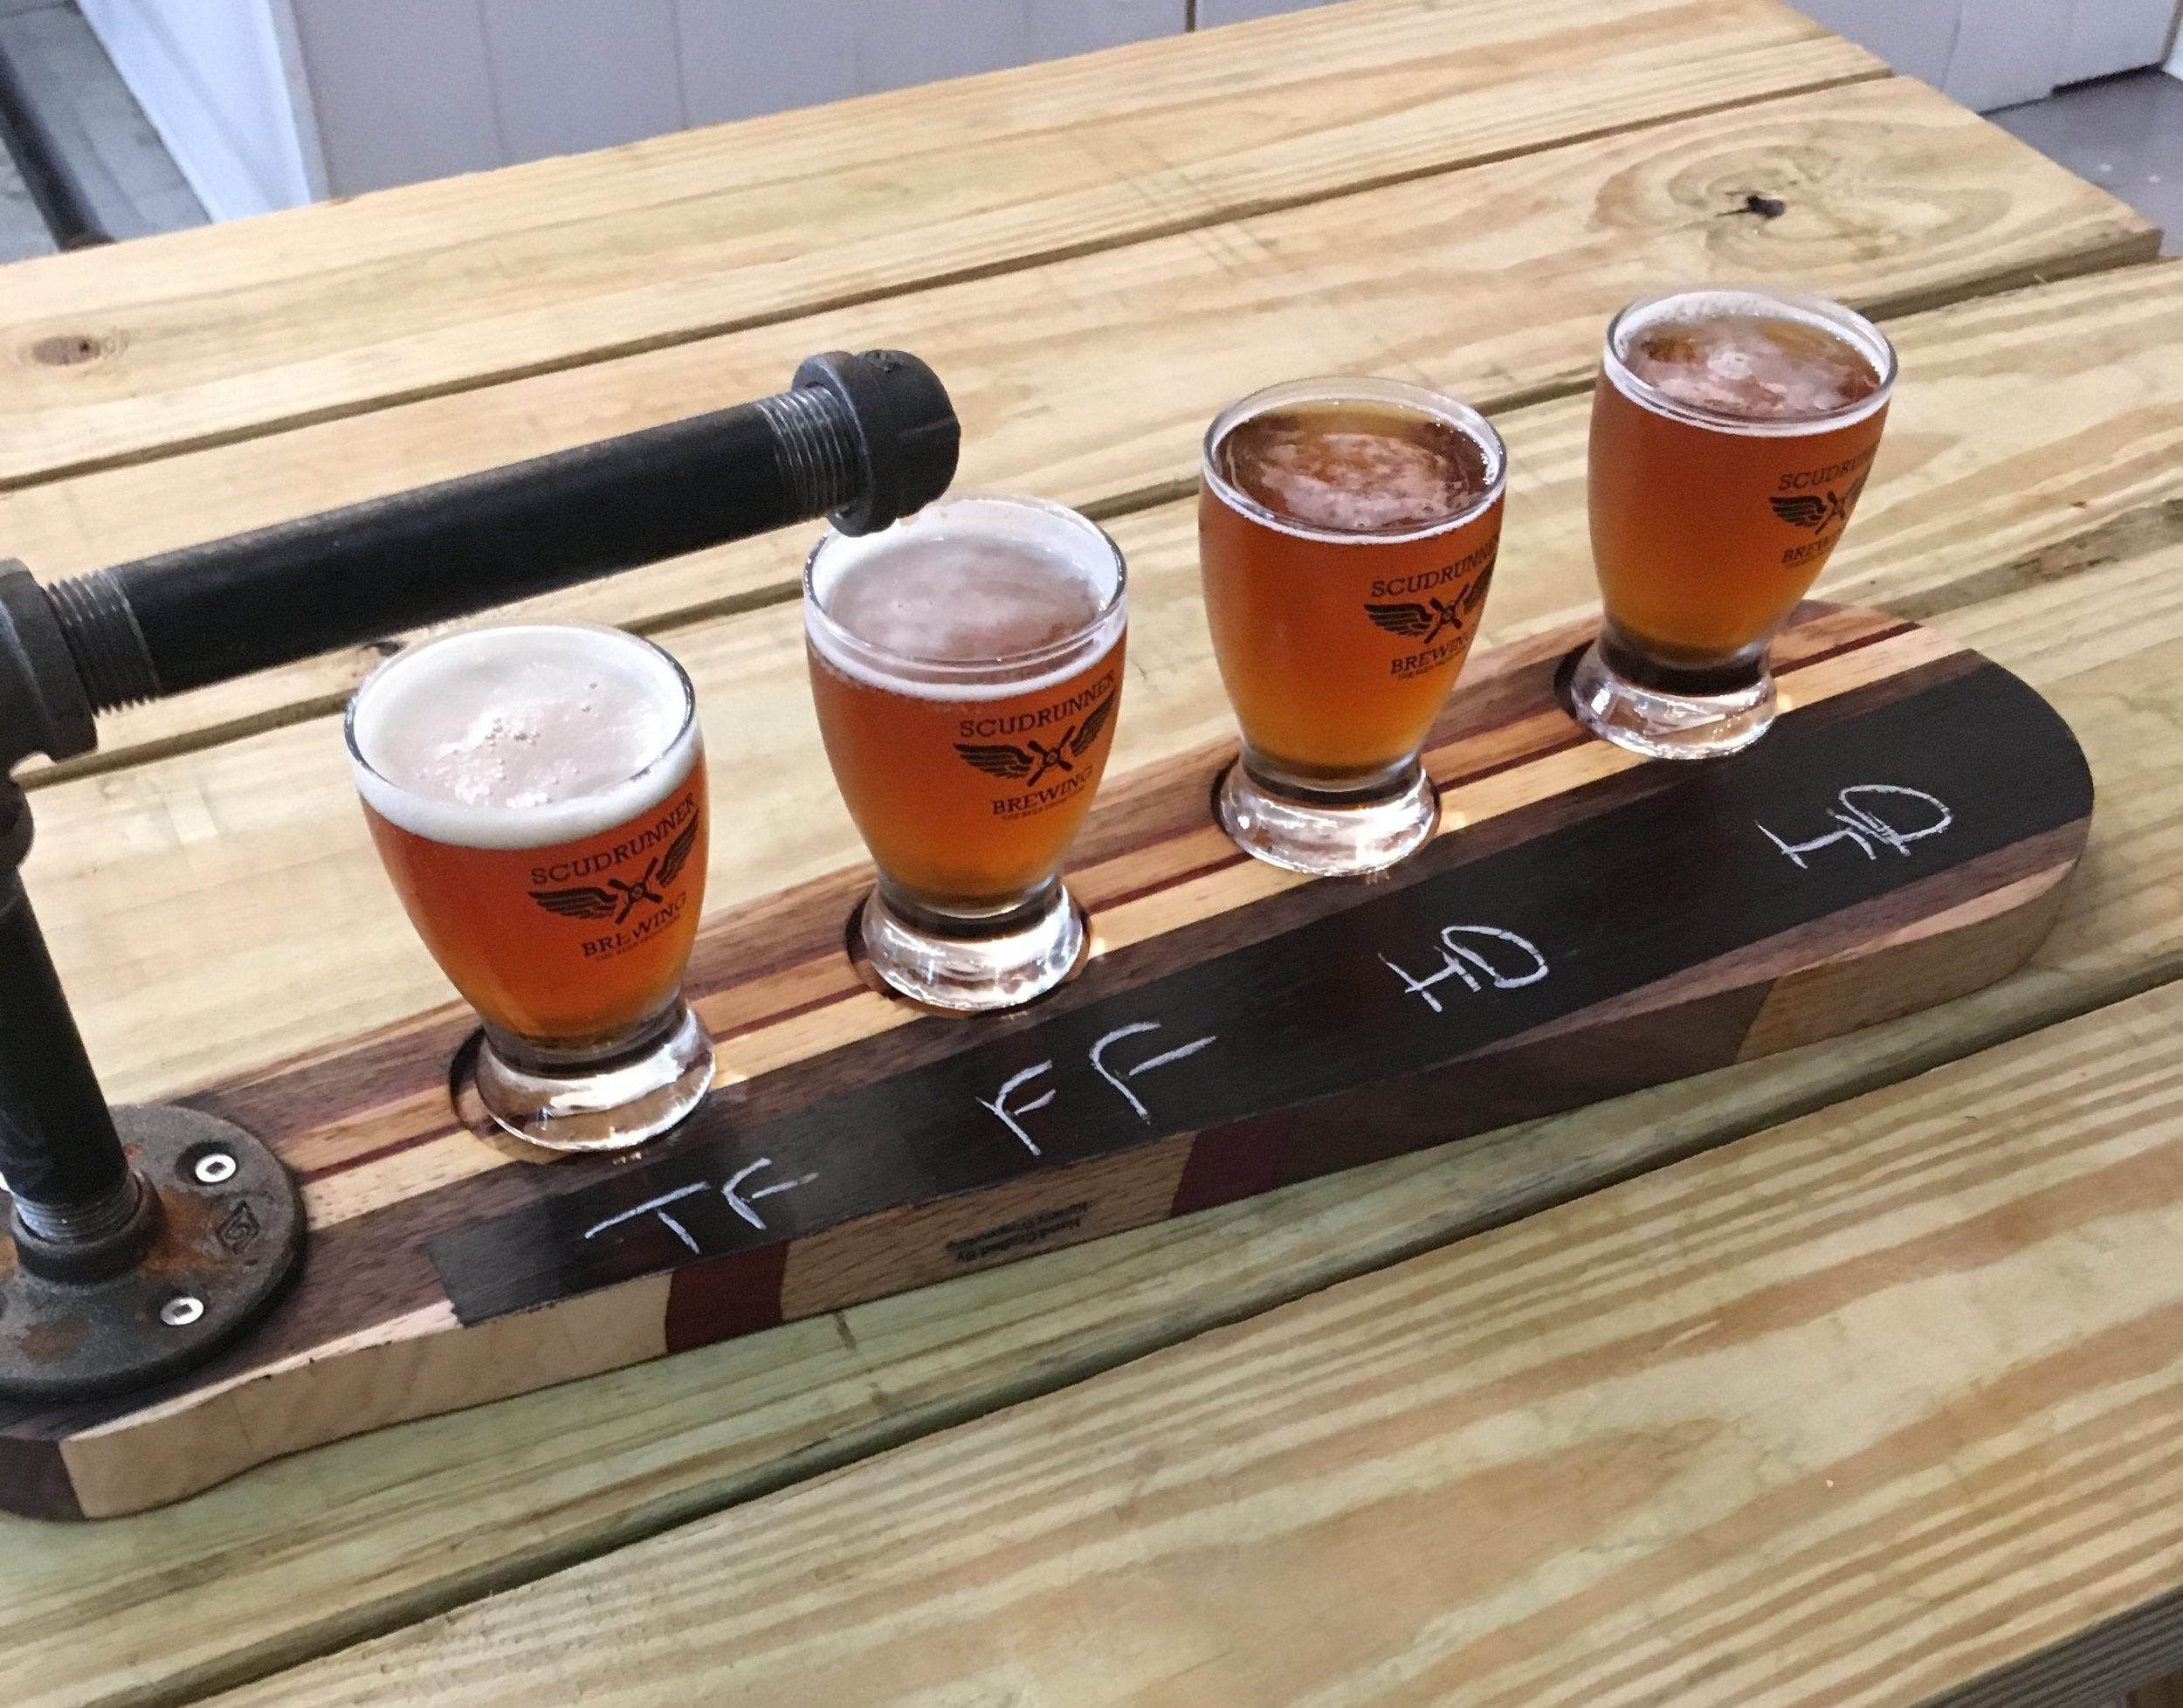 Pictured left to right: Test Flight #1 American Bitter, Frequent Flyer Original Bitter, Hop Duster Session IPA